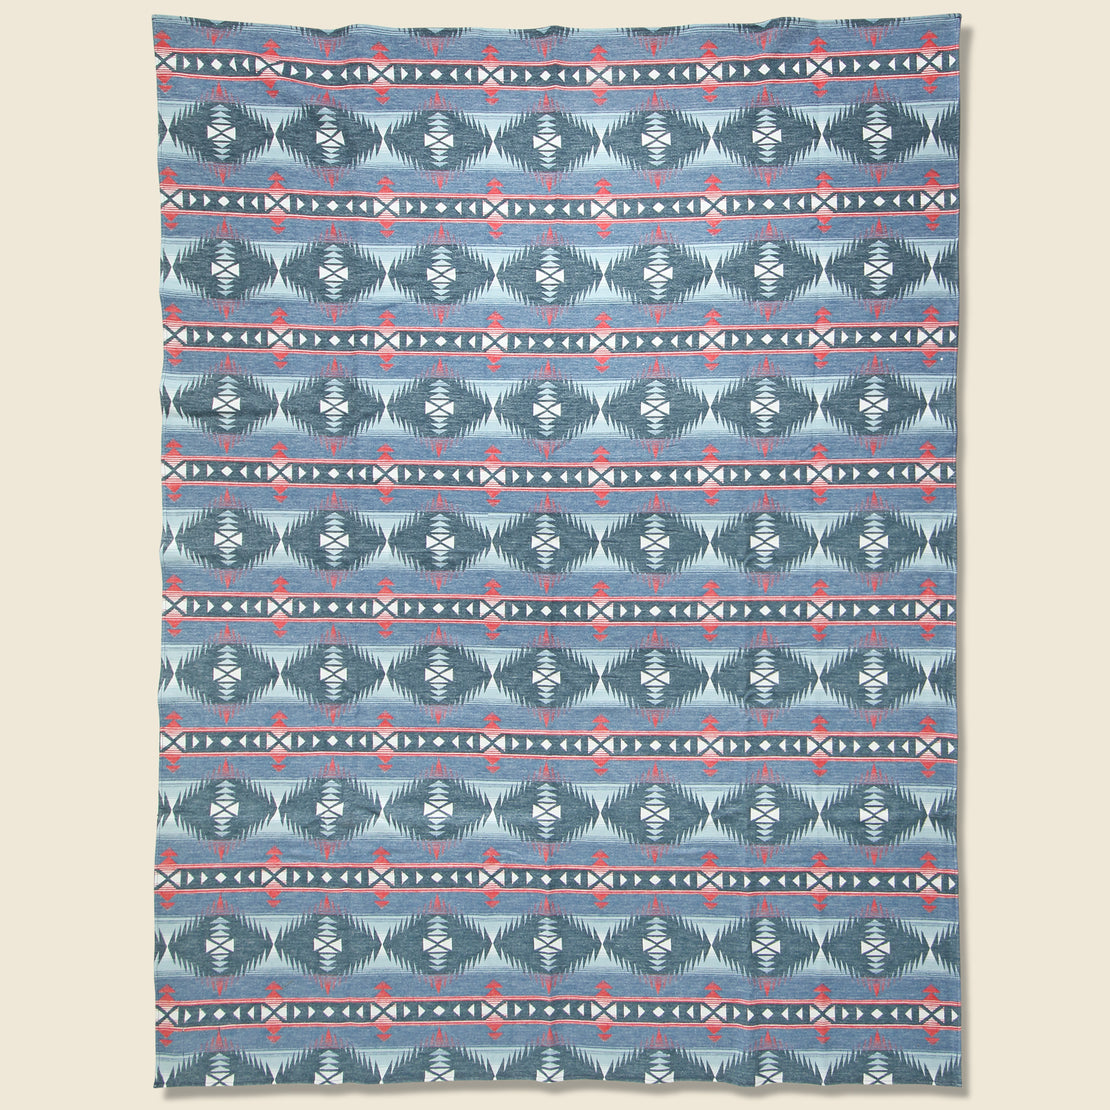 Faherty Adirondack Blanket - Midnight Jewel